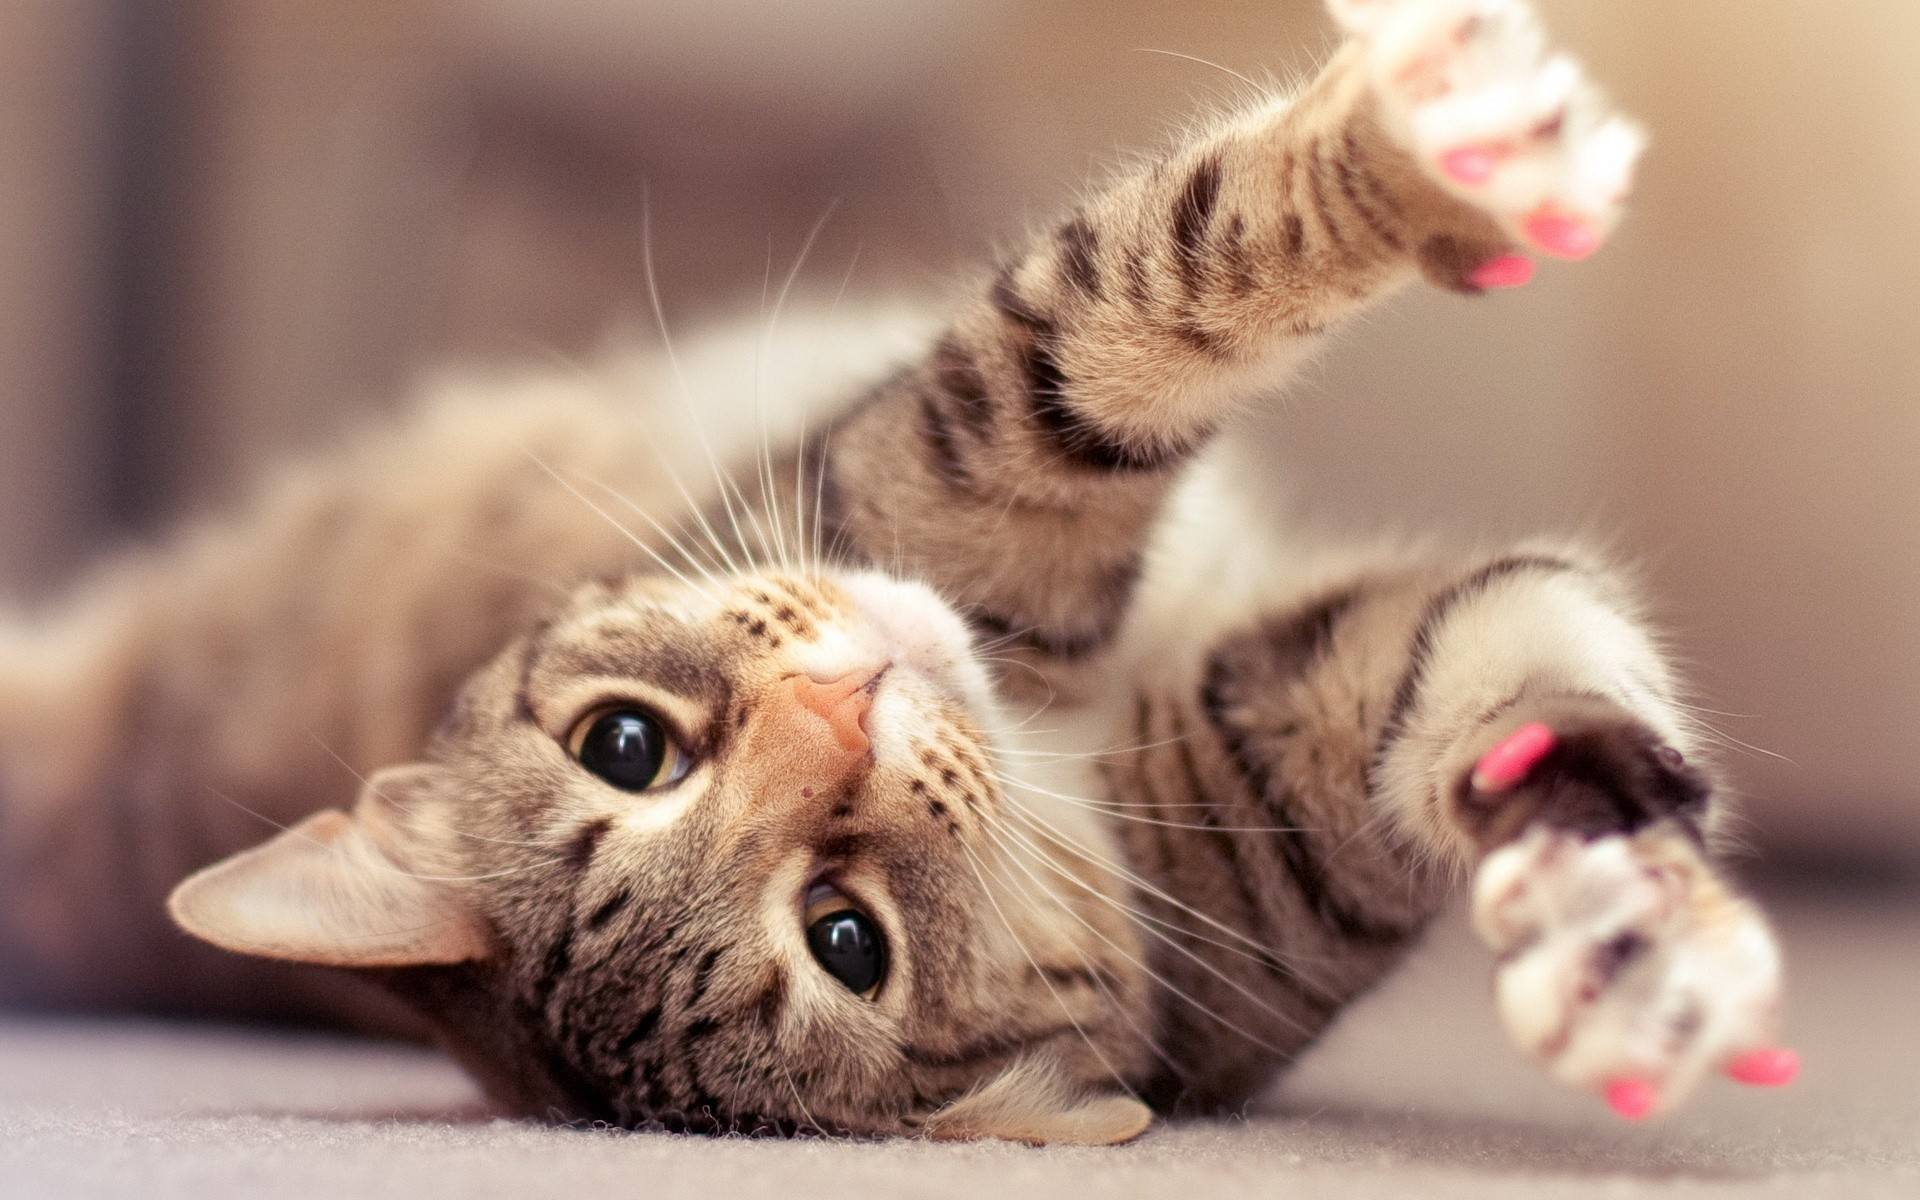 Cute Cat Wallpapers For Desktop 66 Images